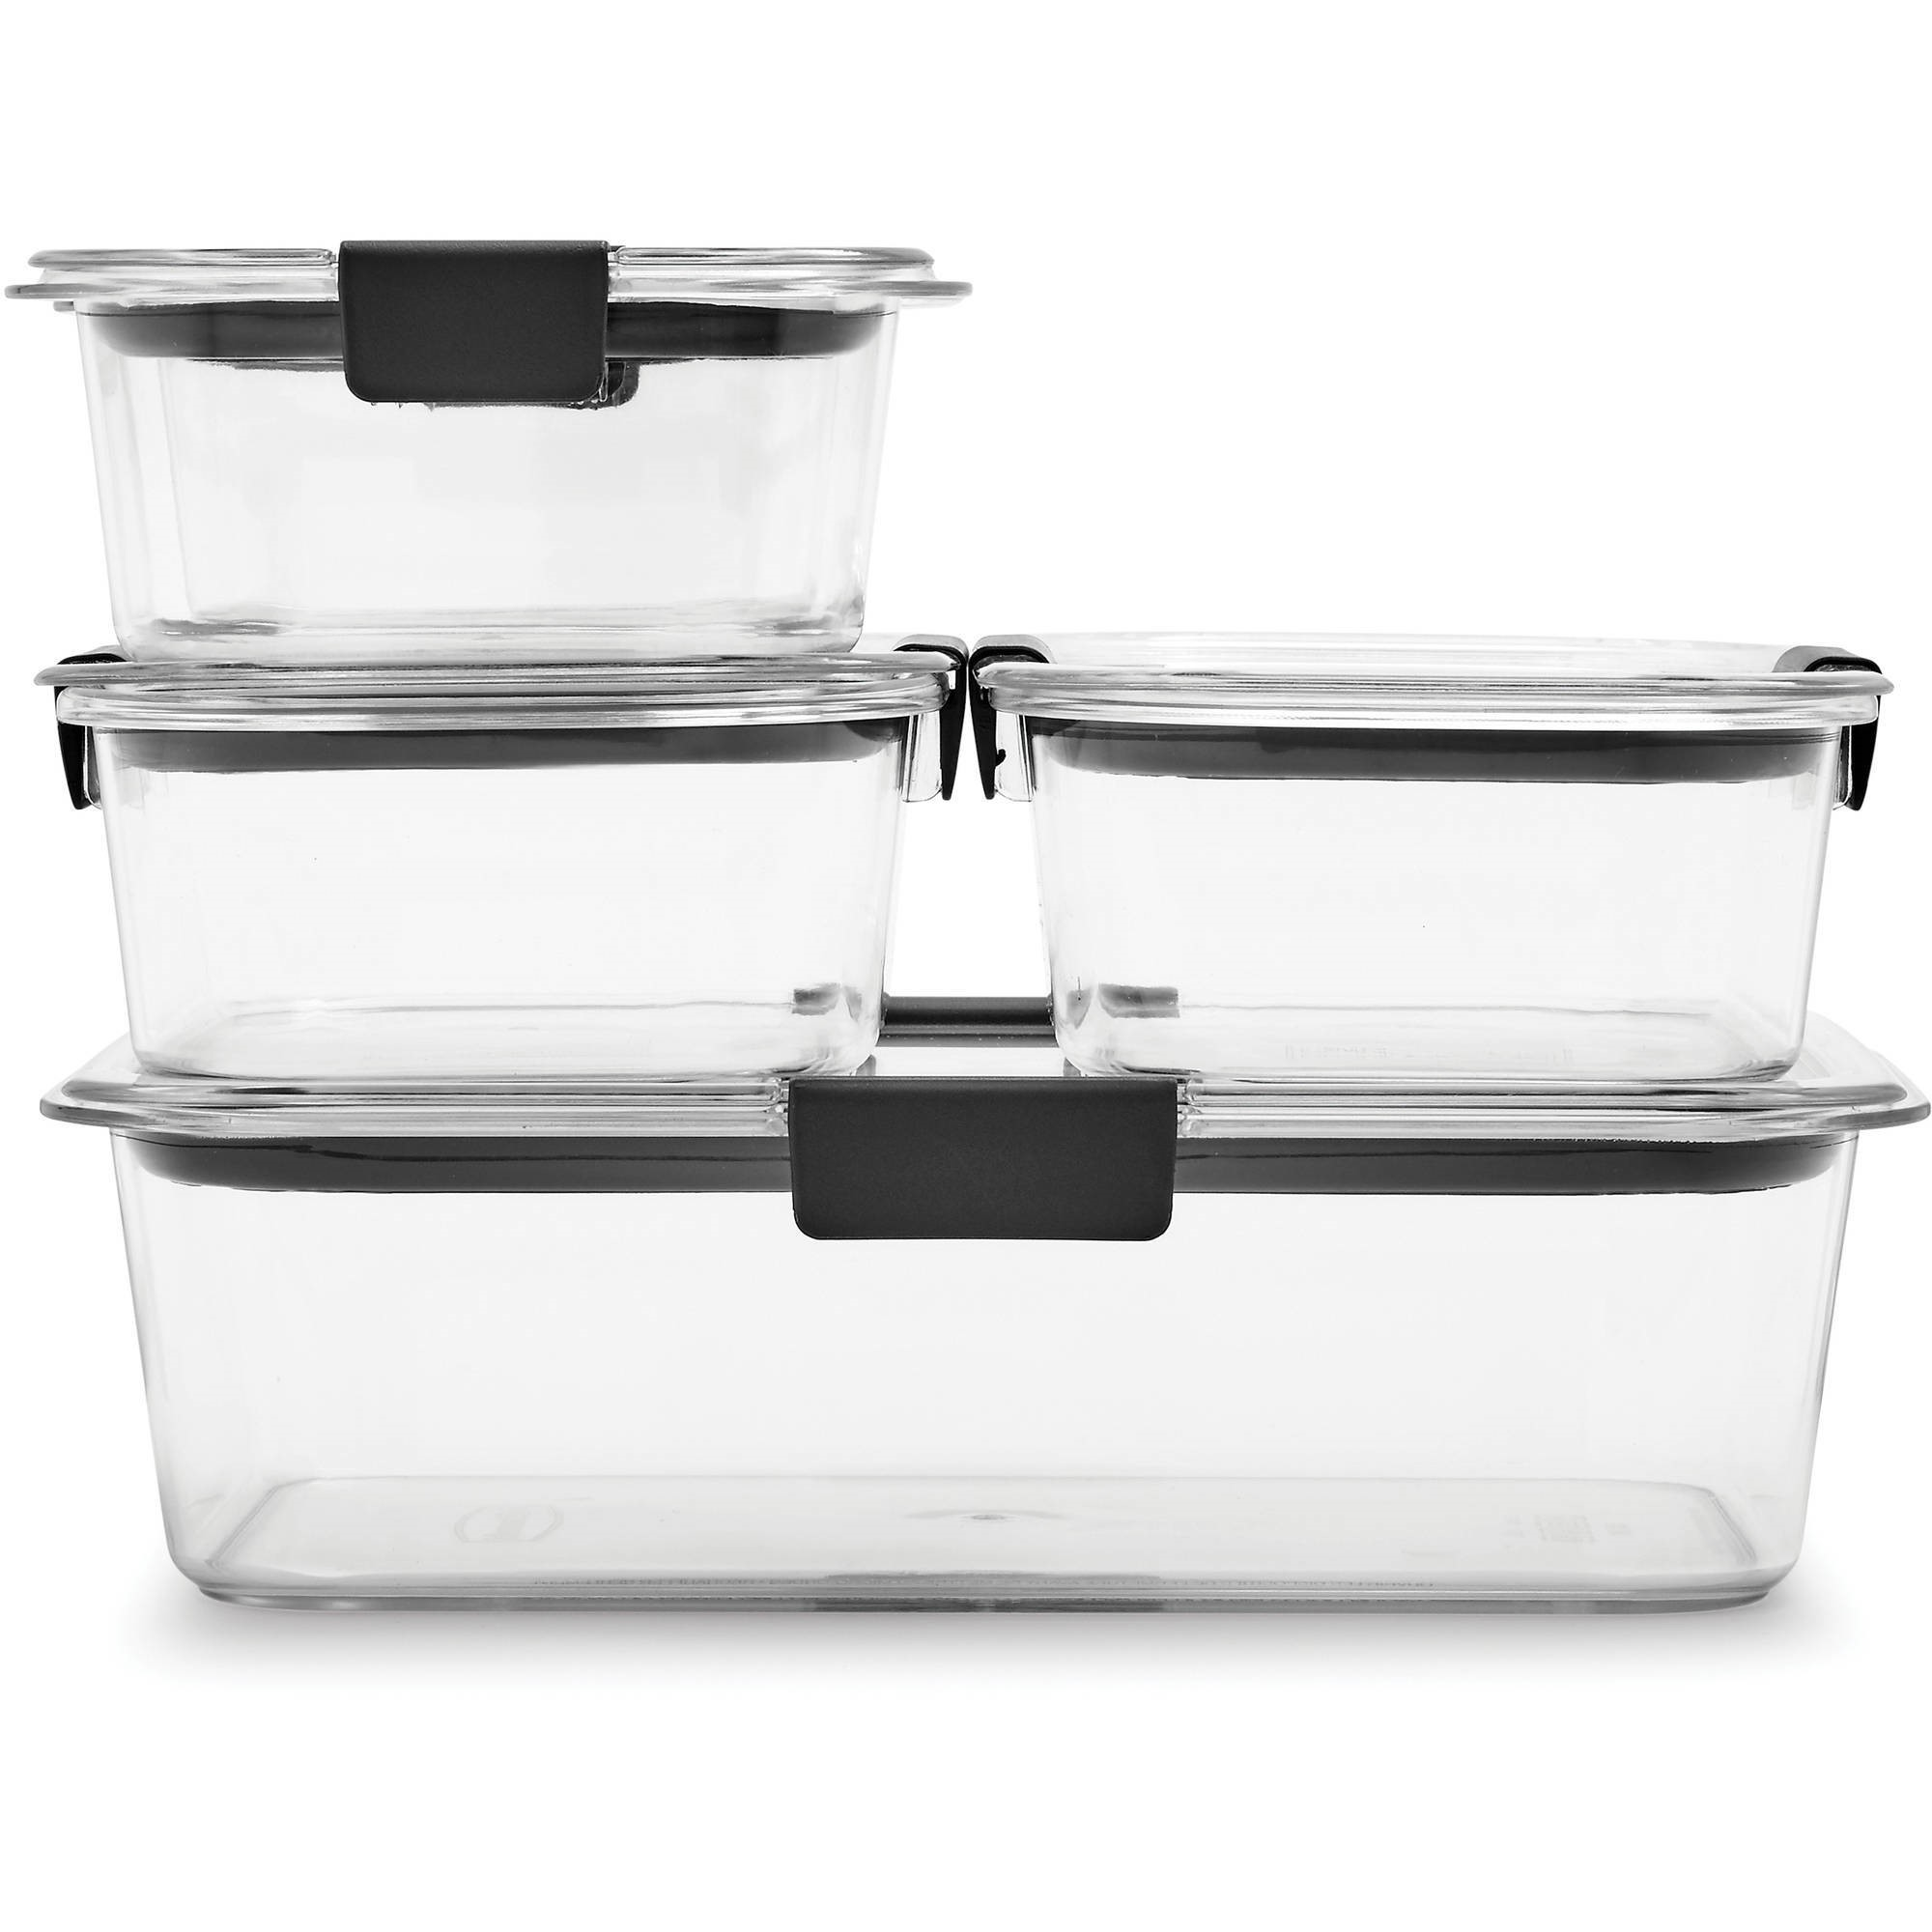 Ordinaire Rubbermaid Brilliance Food Storage Containers, Clear, 10 Piece Set